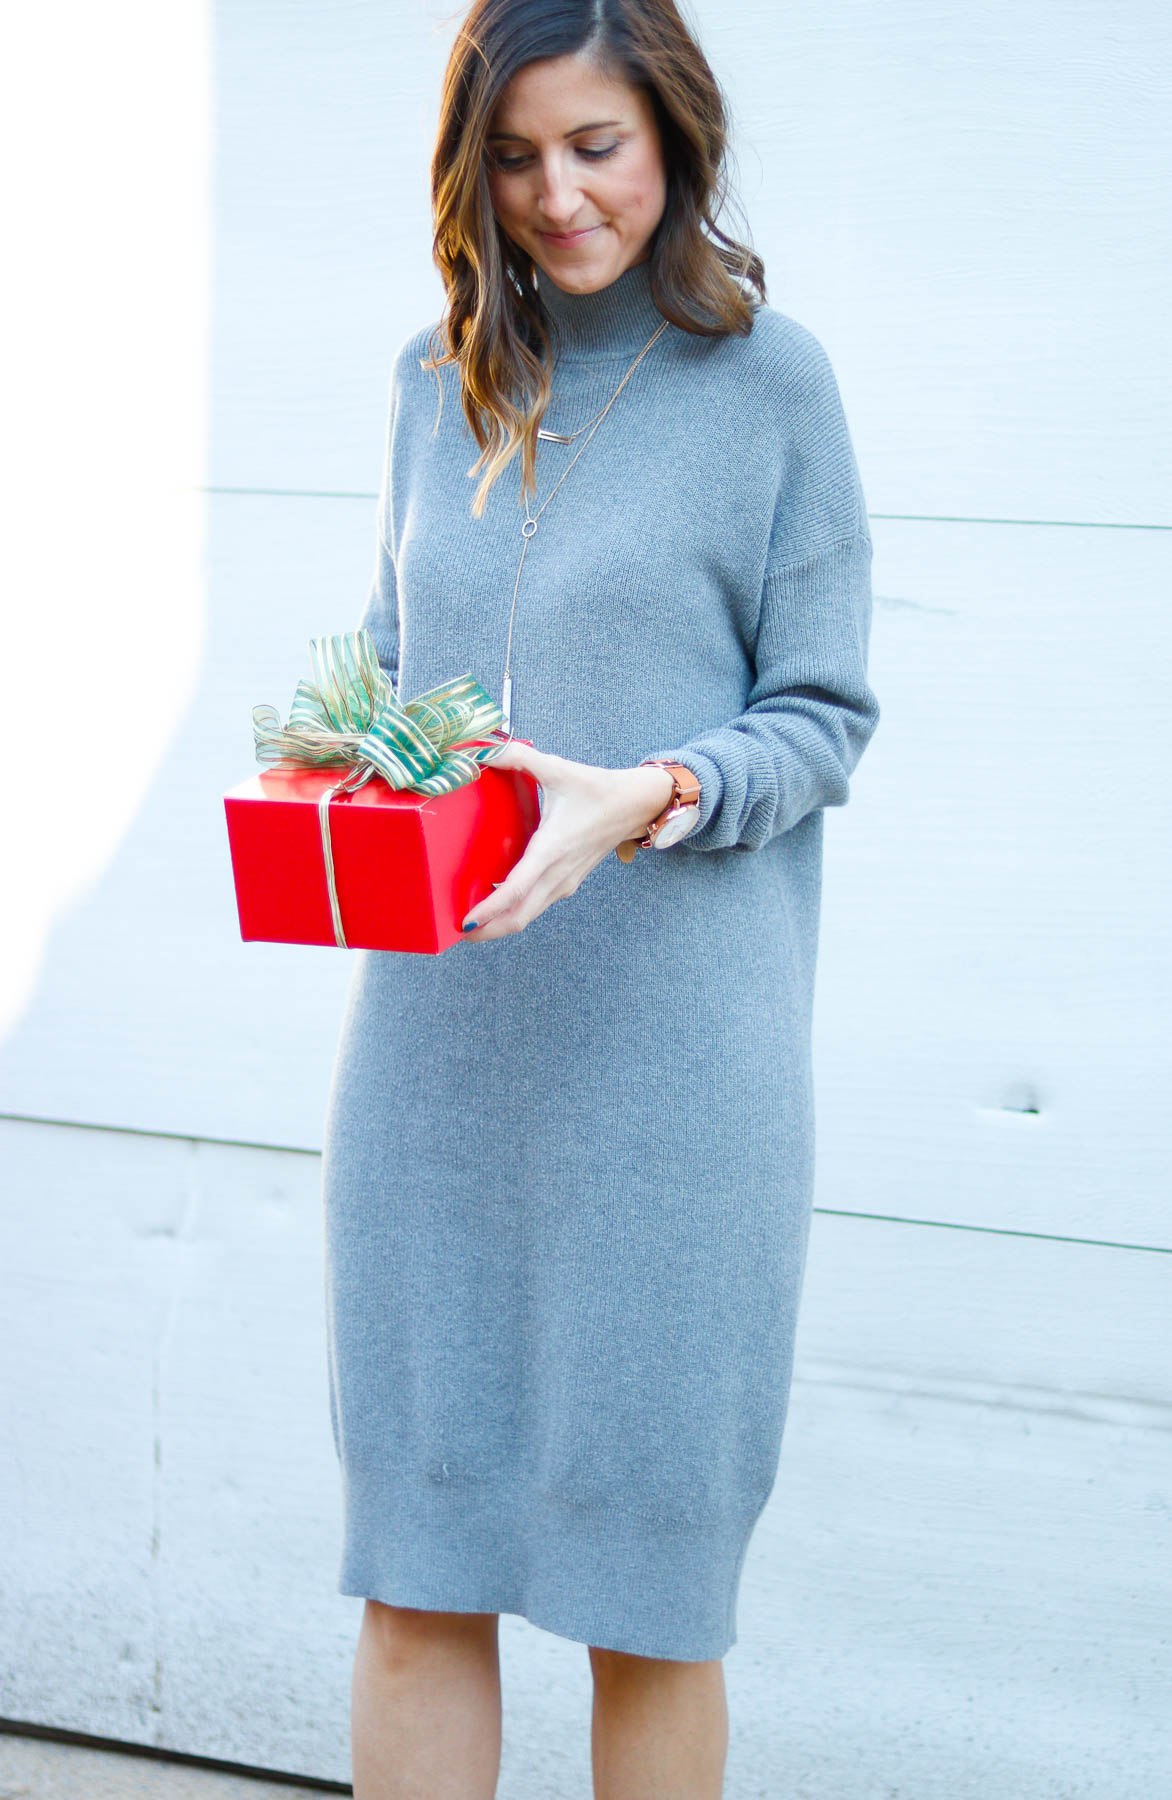 Nordstrom Sweater - Grey Sweater Dress for the Holidays by Washington DC style blogger Cobalt Chronicles